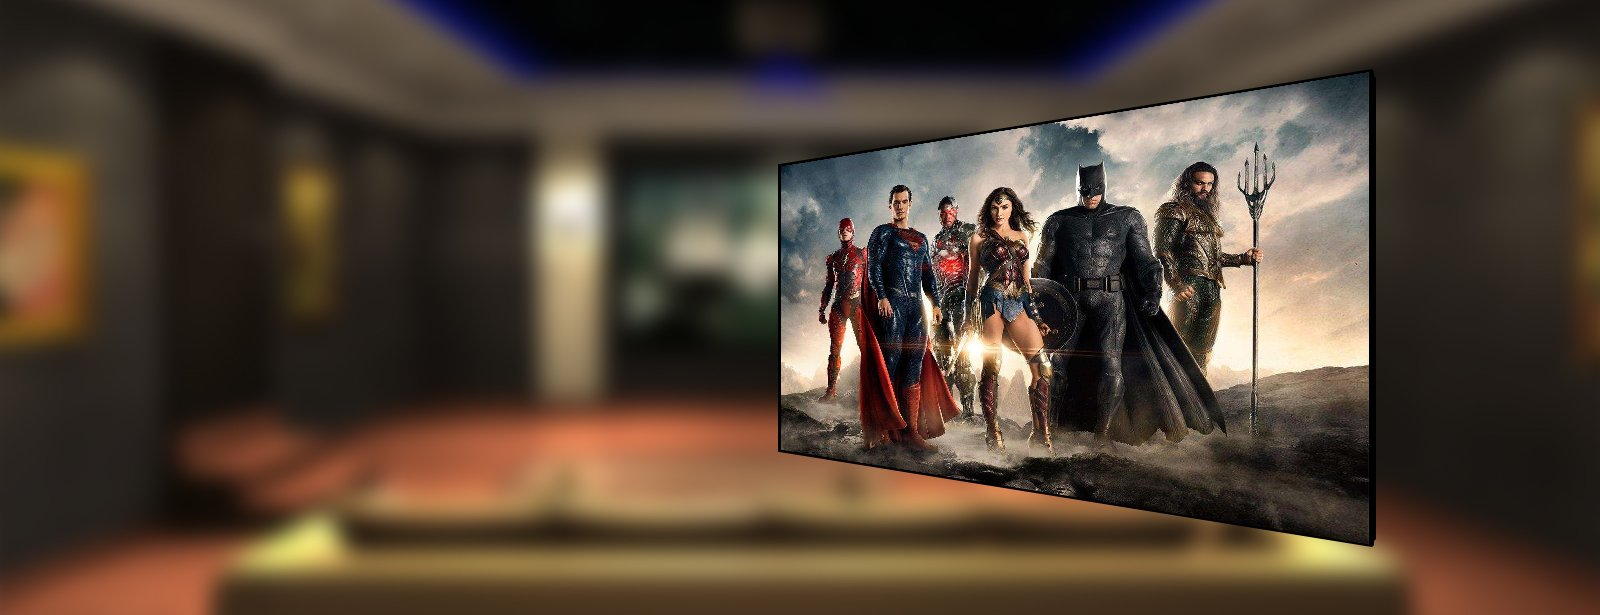 category-Hd Projector Screen Full Hd Home Projector On Xiong-yun-XY Screens-img